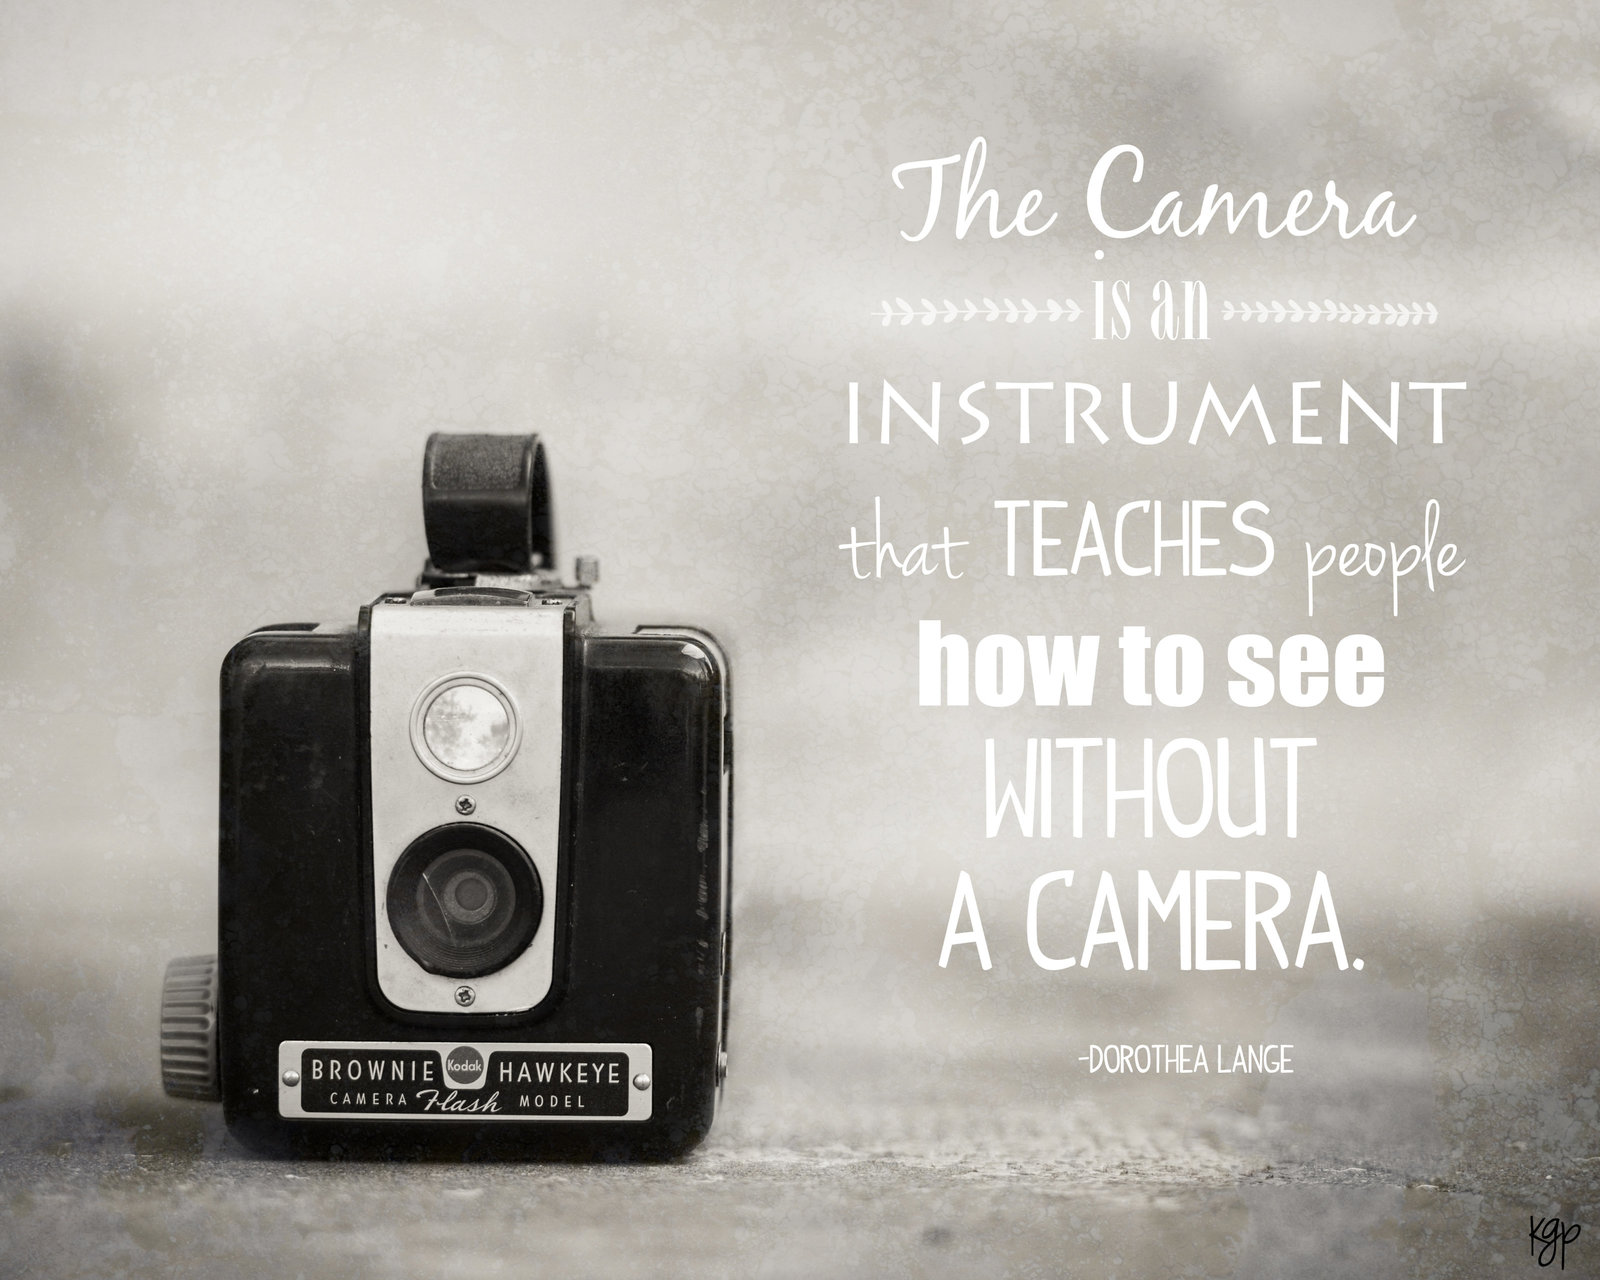 Brownie Hawkeye Camera with Dorothea Lange quote